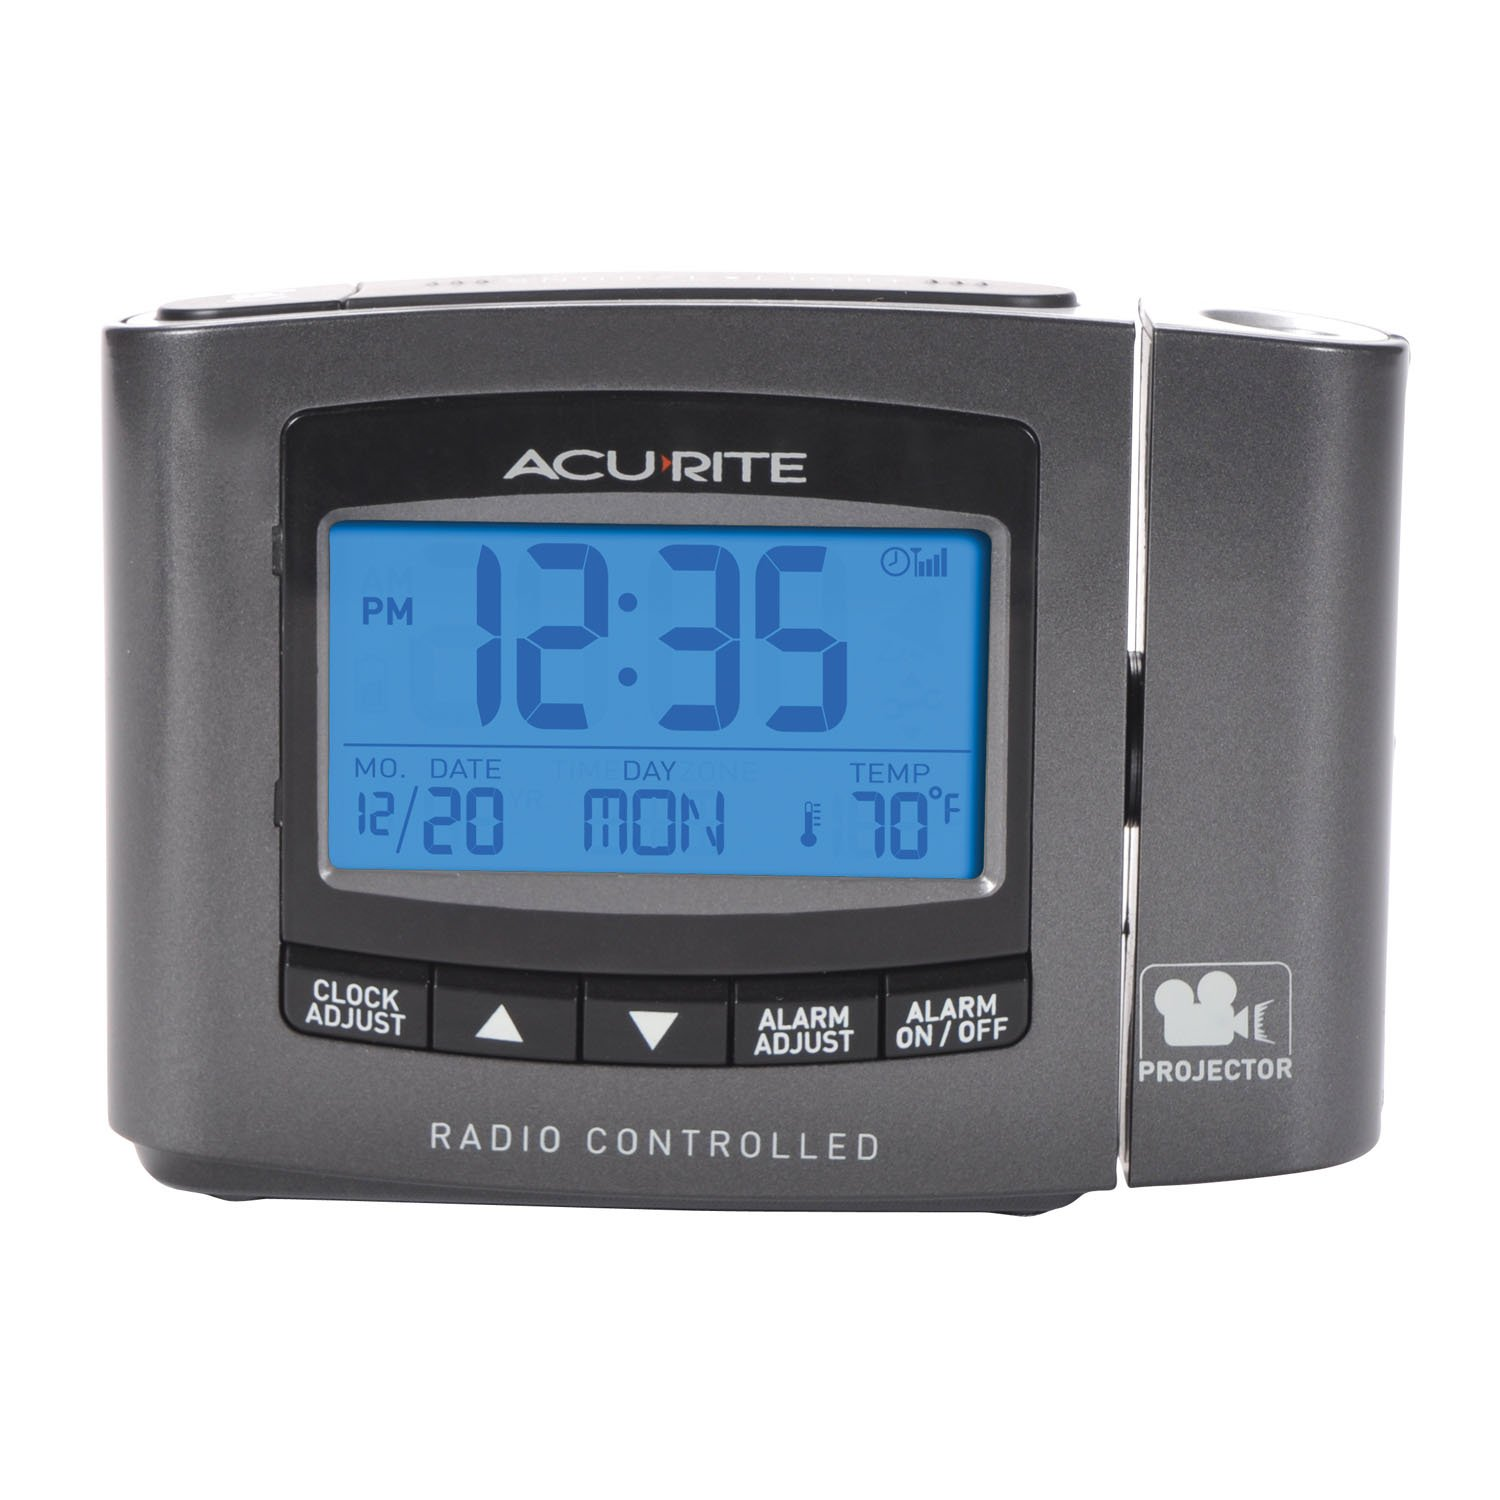 Amazoncom AcuRite 13239A1 Atomic Projection Clock with